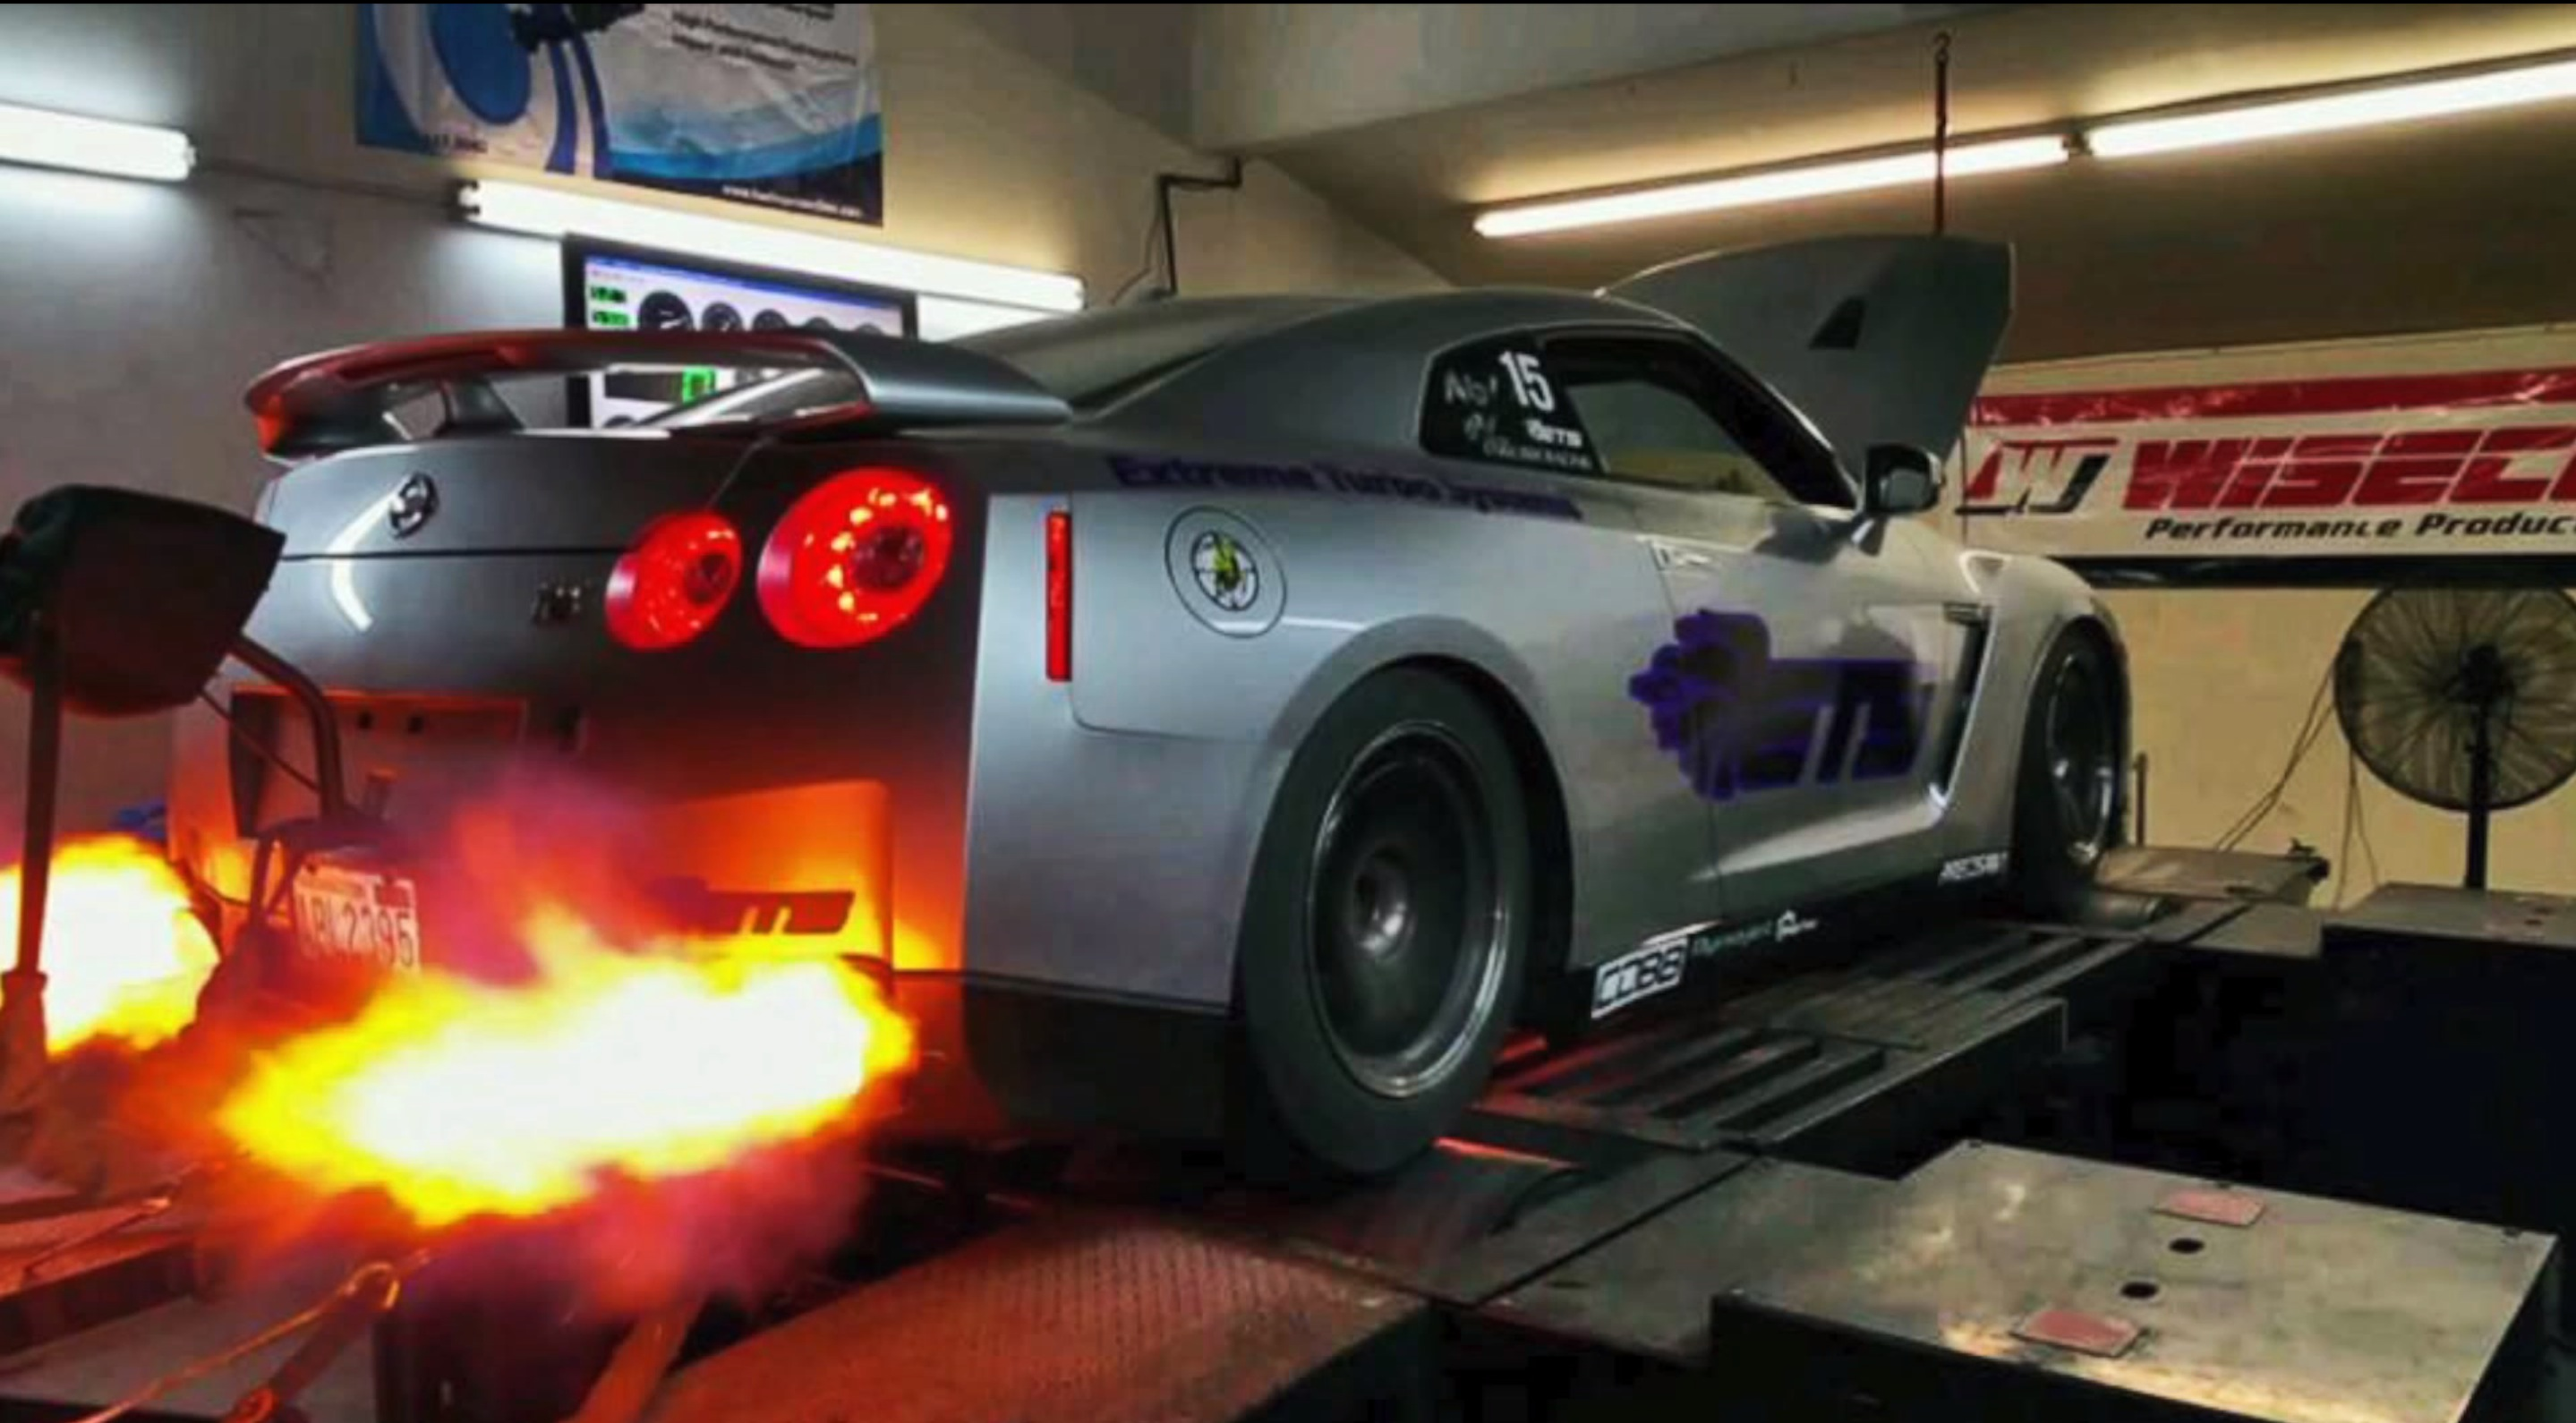 Ets Gt R Breaks World Record For 1 4 Mile Dyno